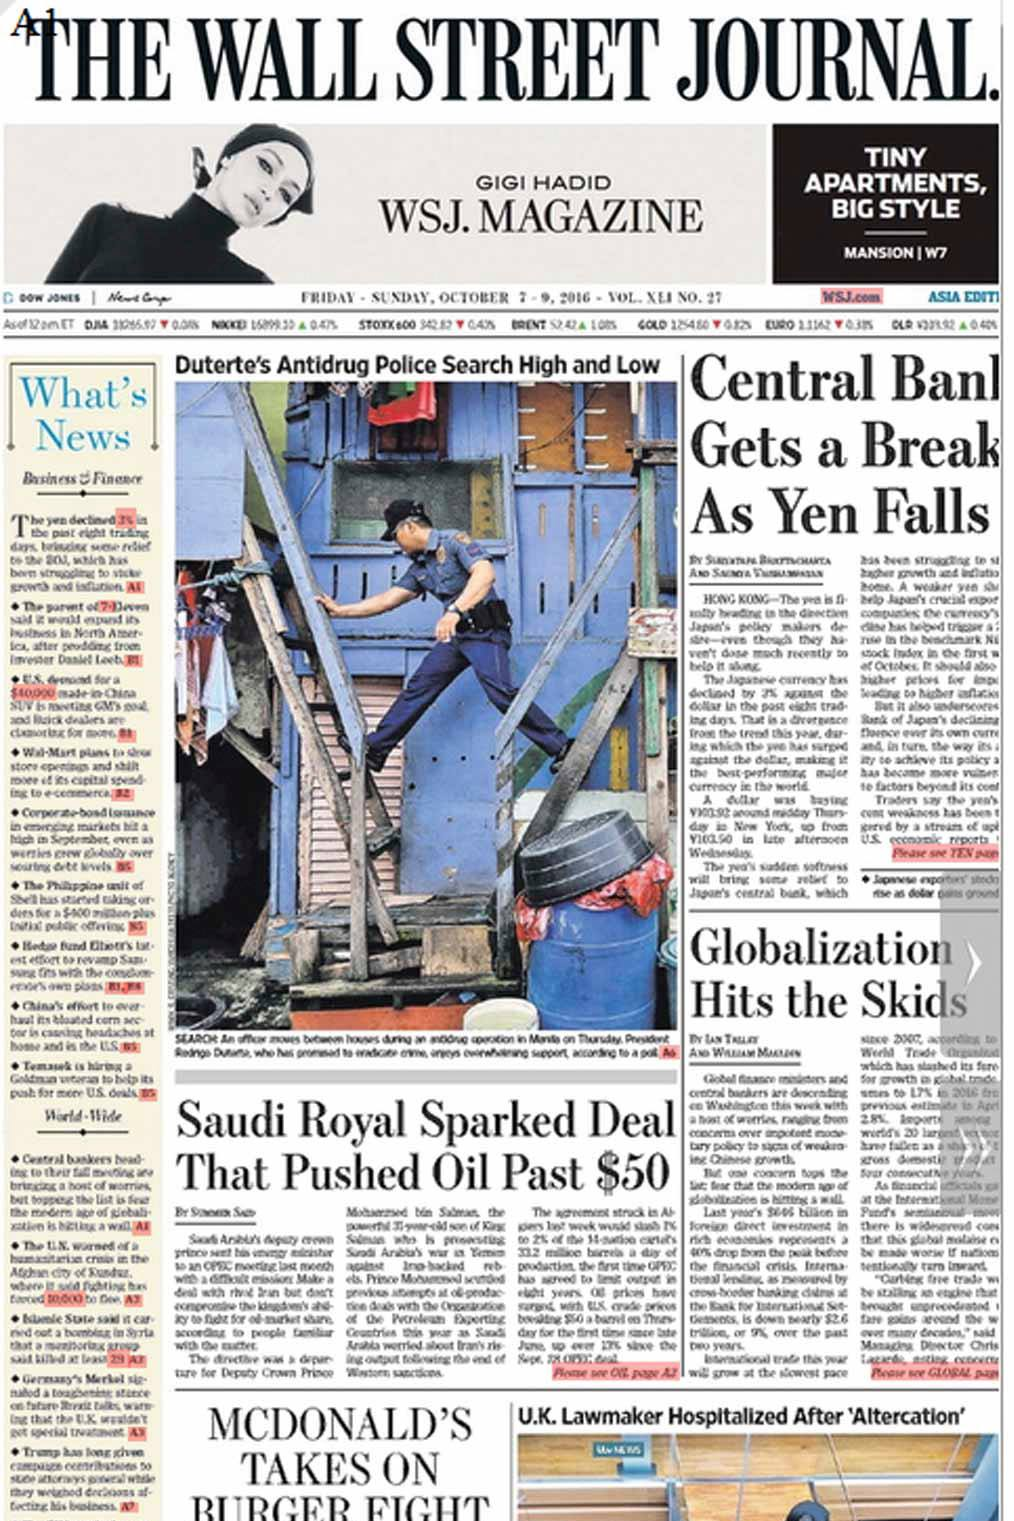 2016_10_09 anti drugs WSJ front